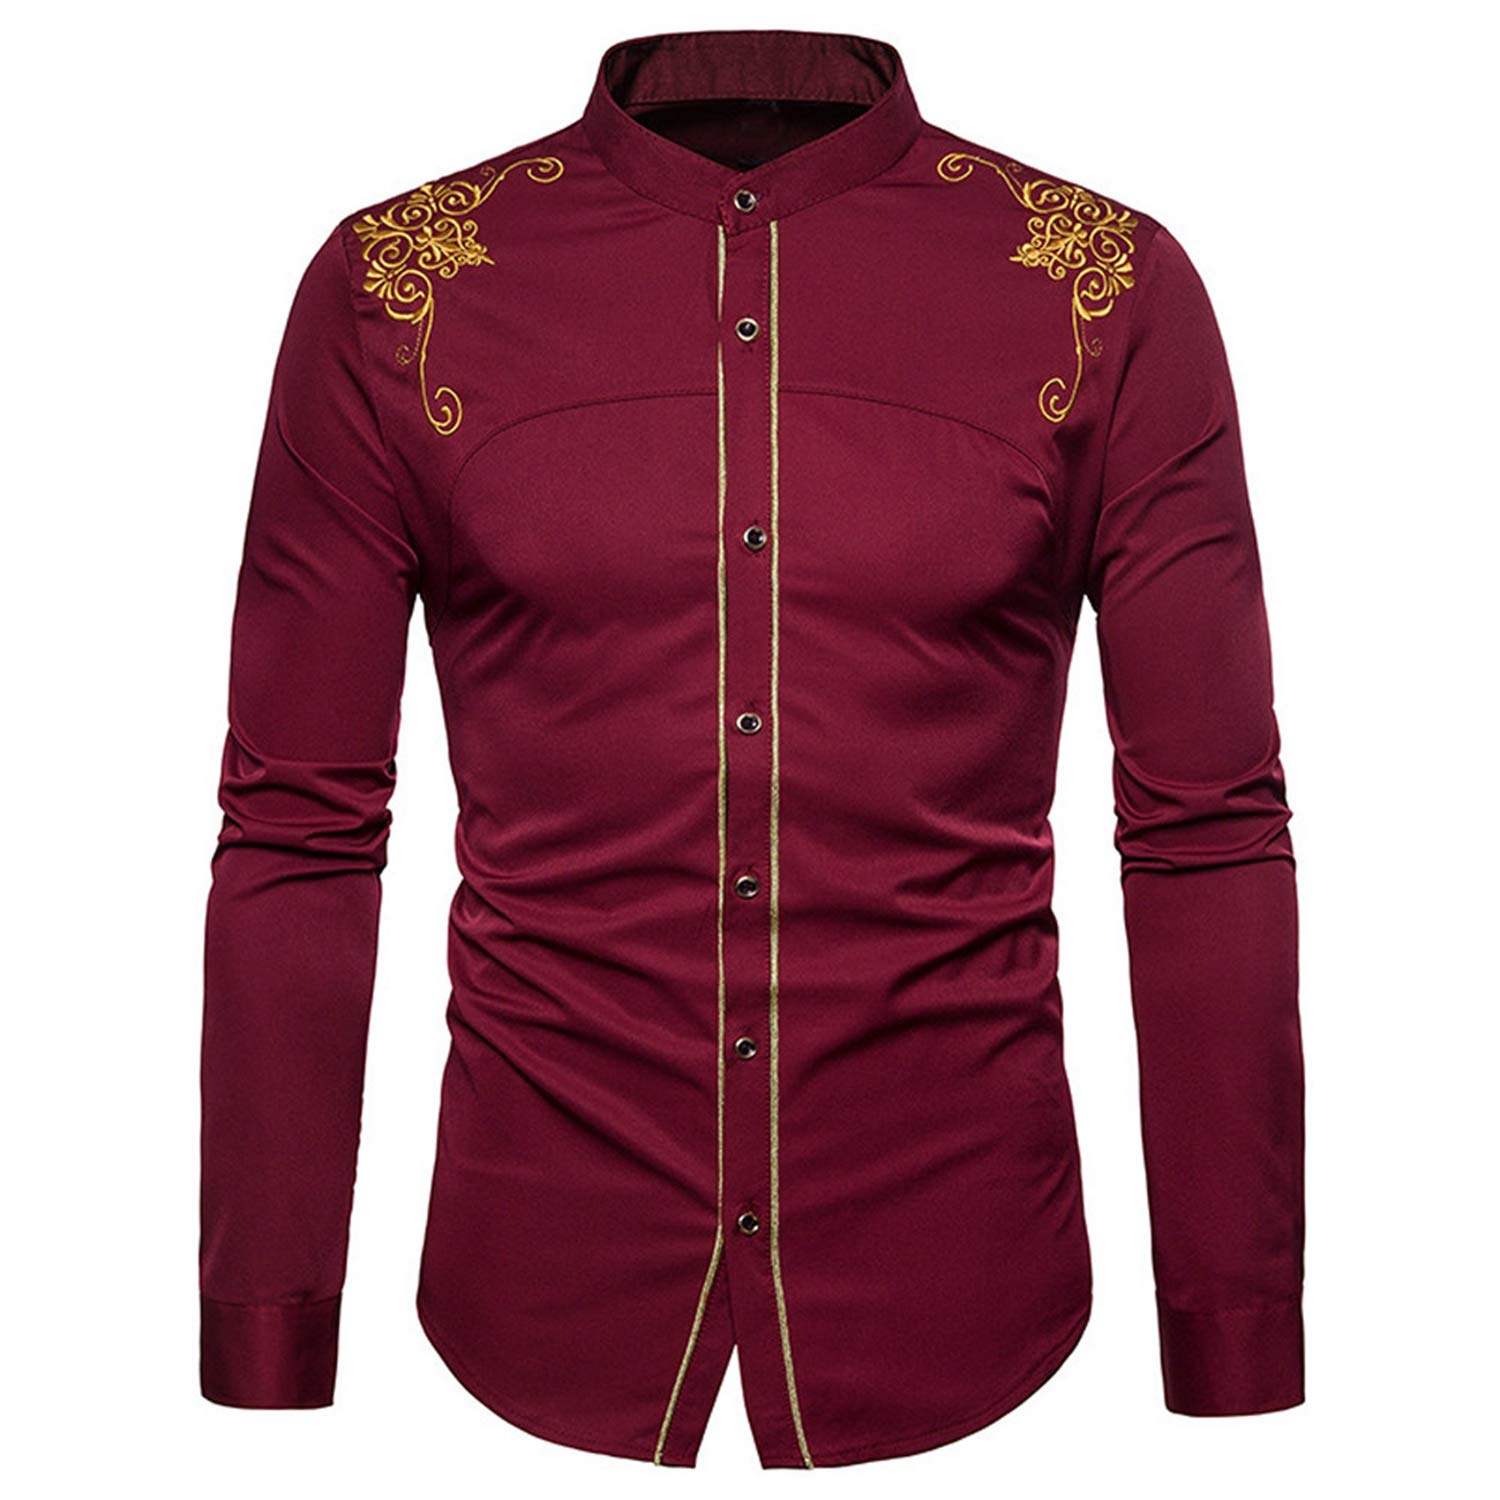 Mens Shirts fit Vintage Embroidery Down Fashion Hipster fit Long Sleeve Button Tops Winter Cotton Lightweiht Shirt